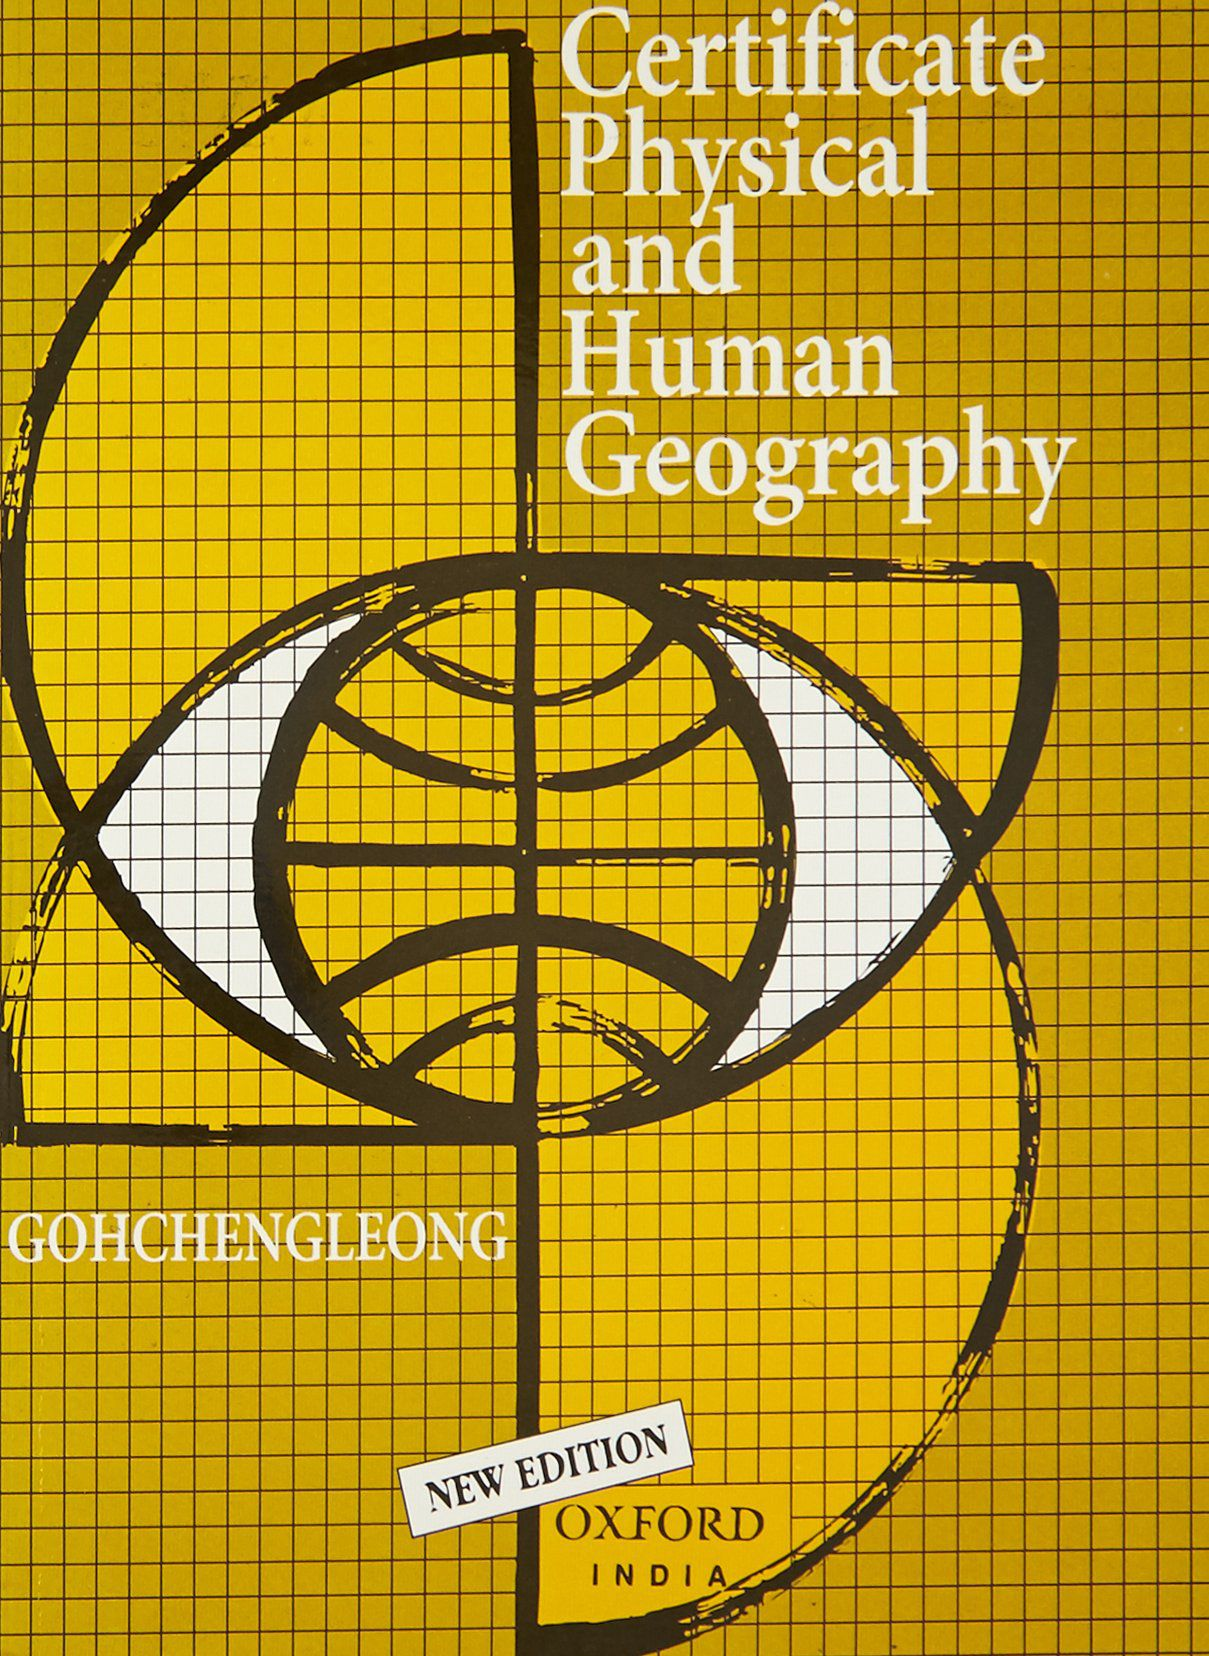 Certificate Physical and Human Geography Paperback (English)